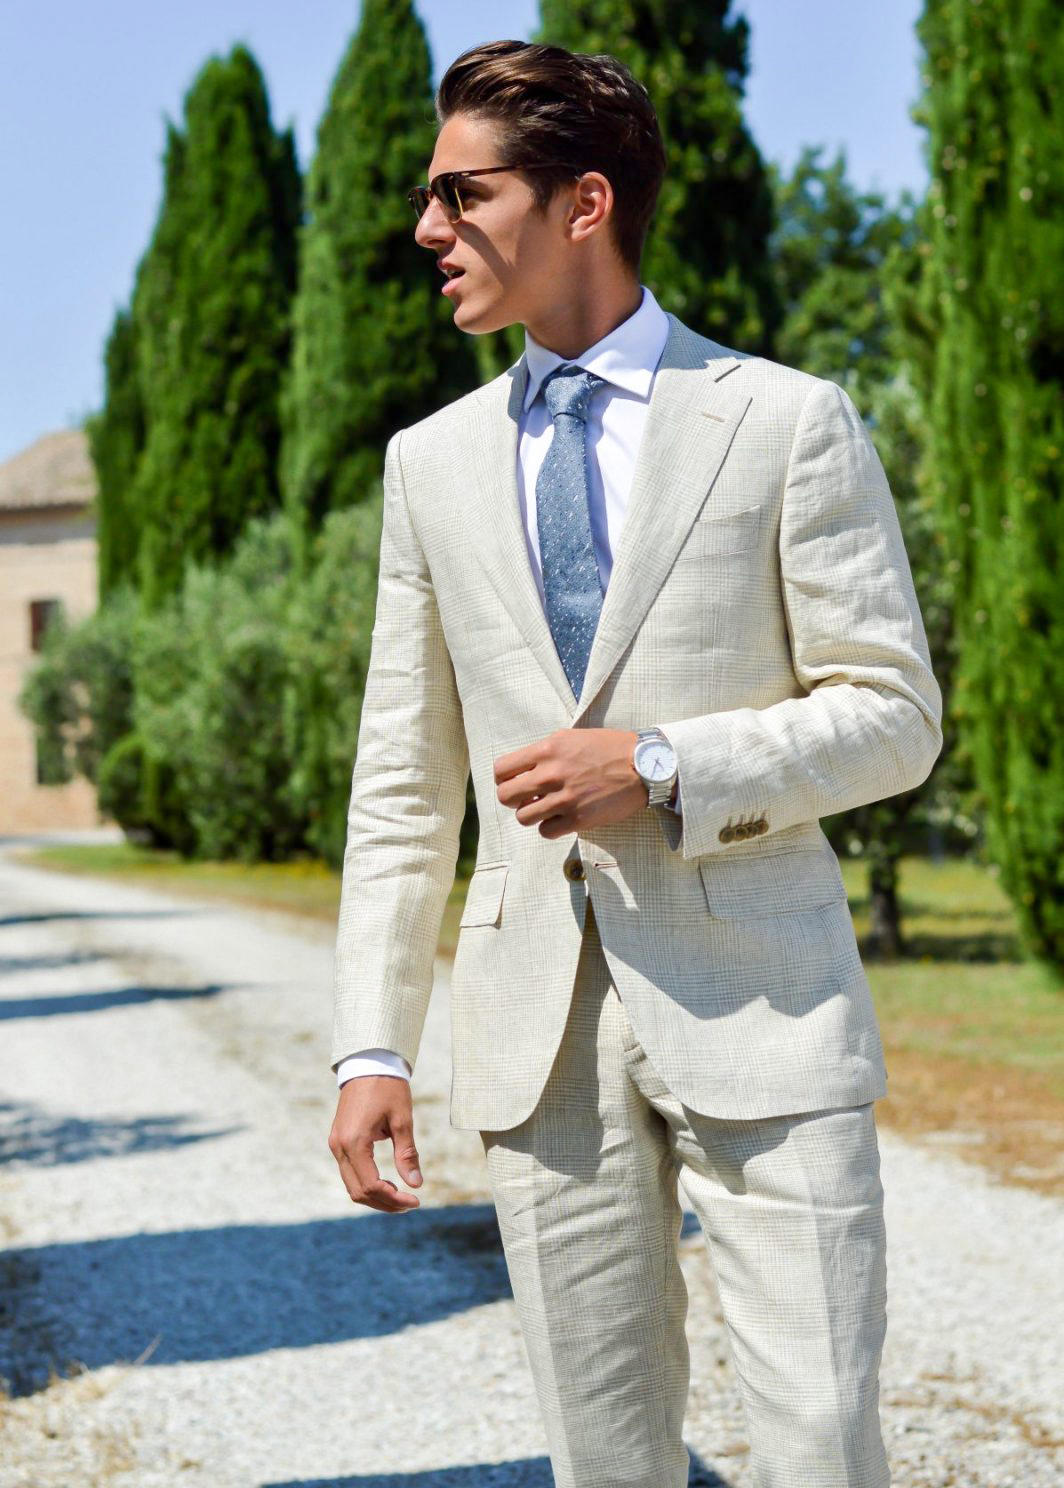 beige suit and white shirt color combinations